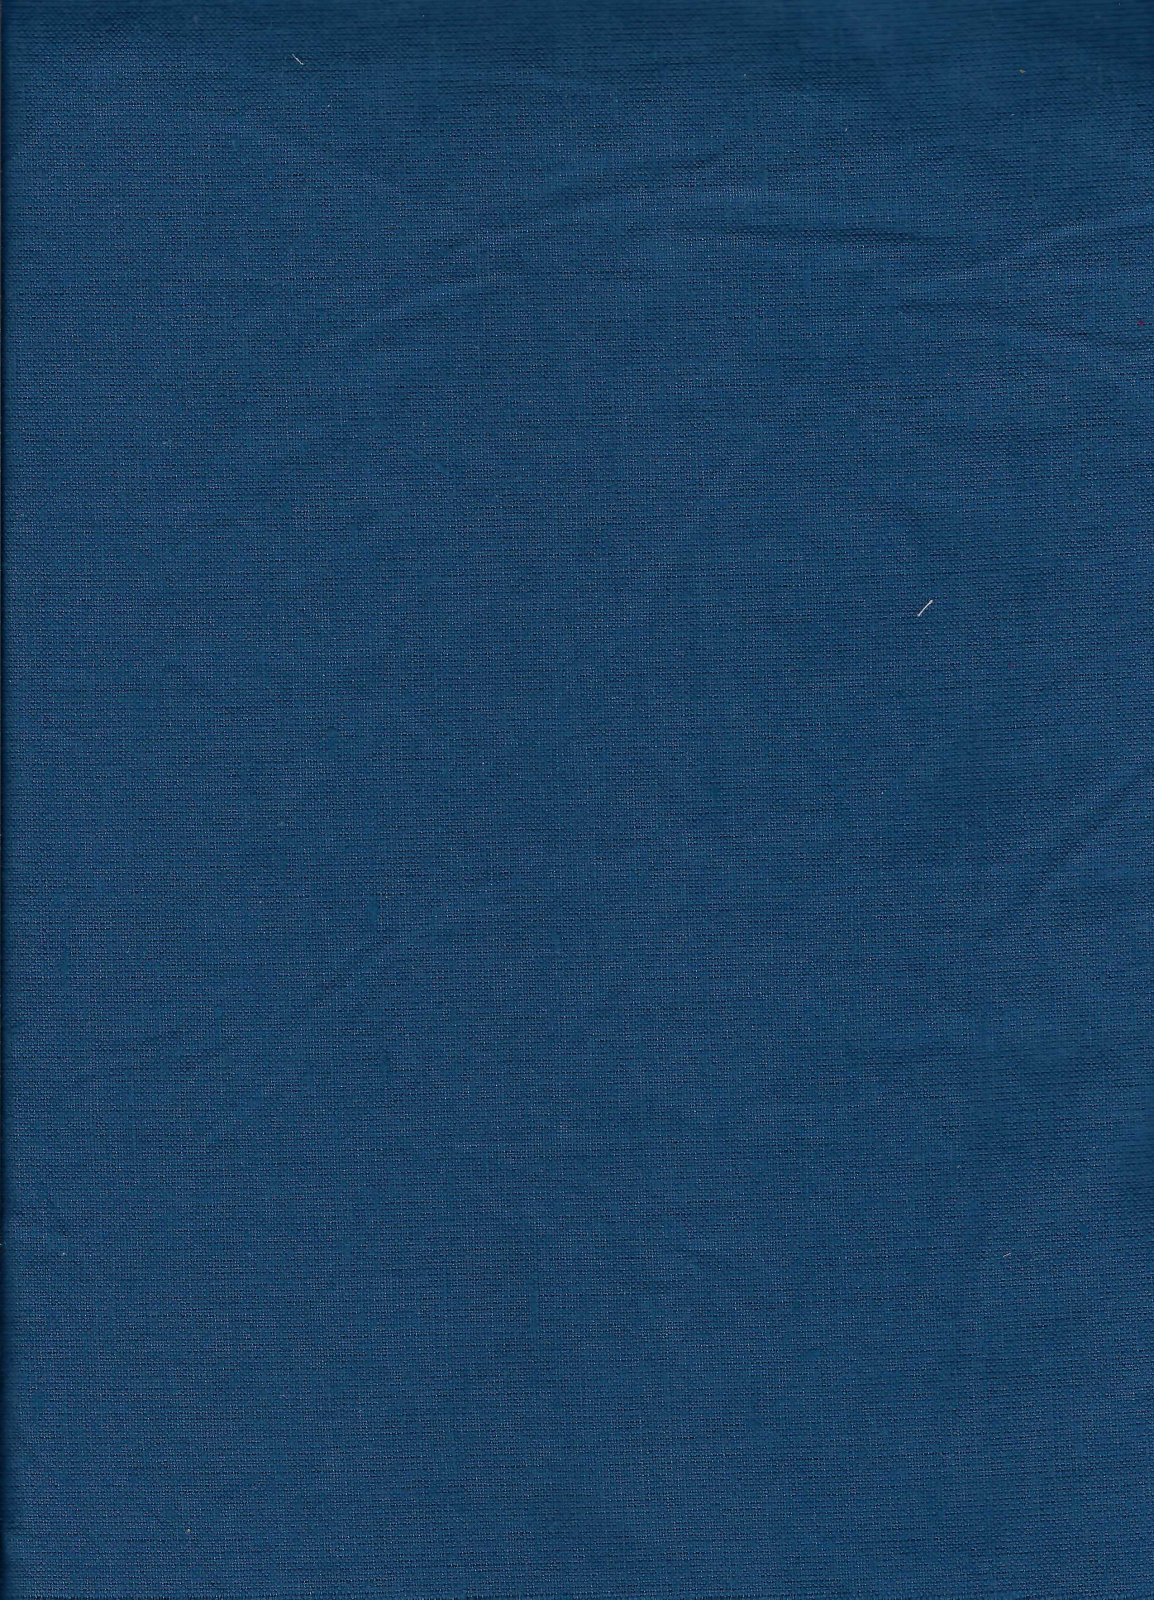 Toweling - 3 yards - Colonial Blue